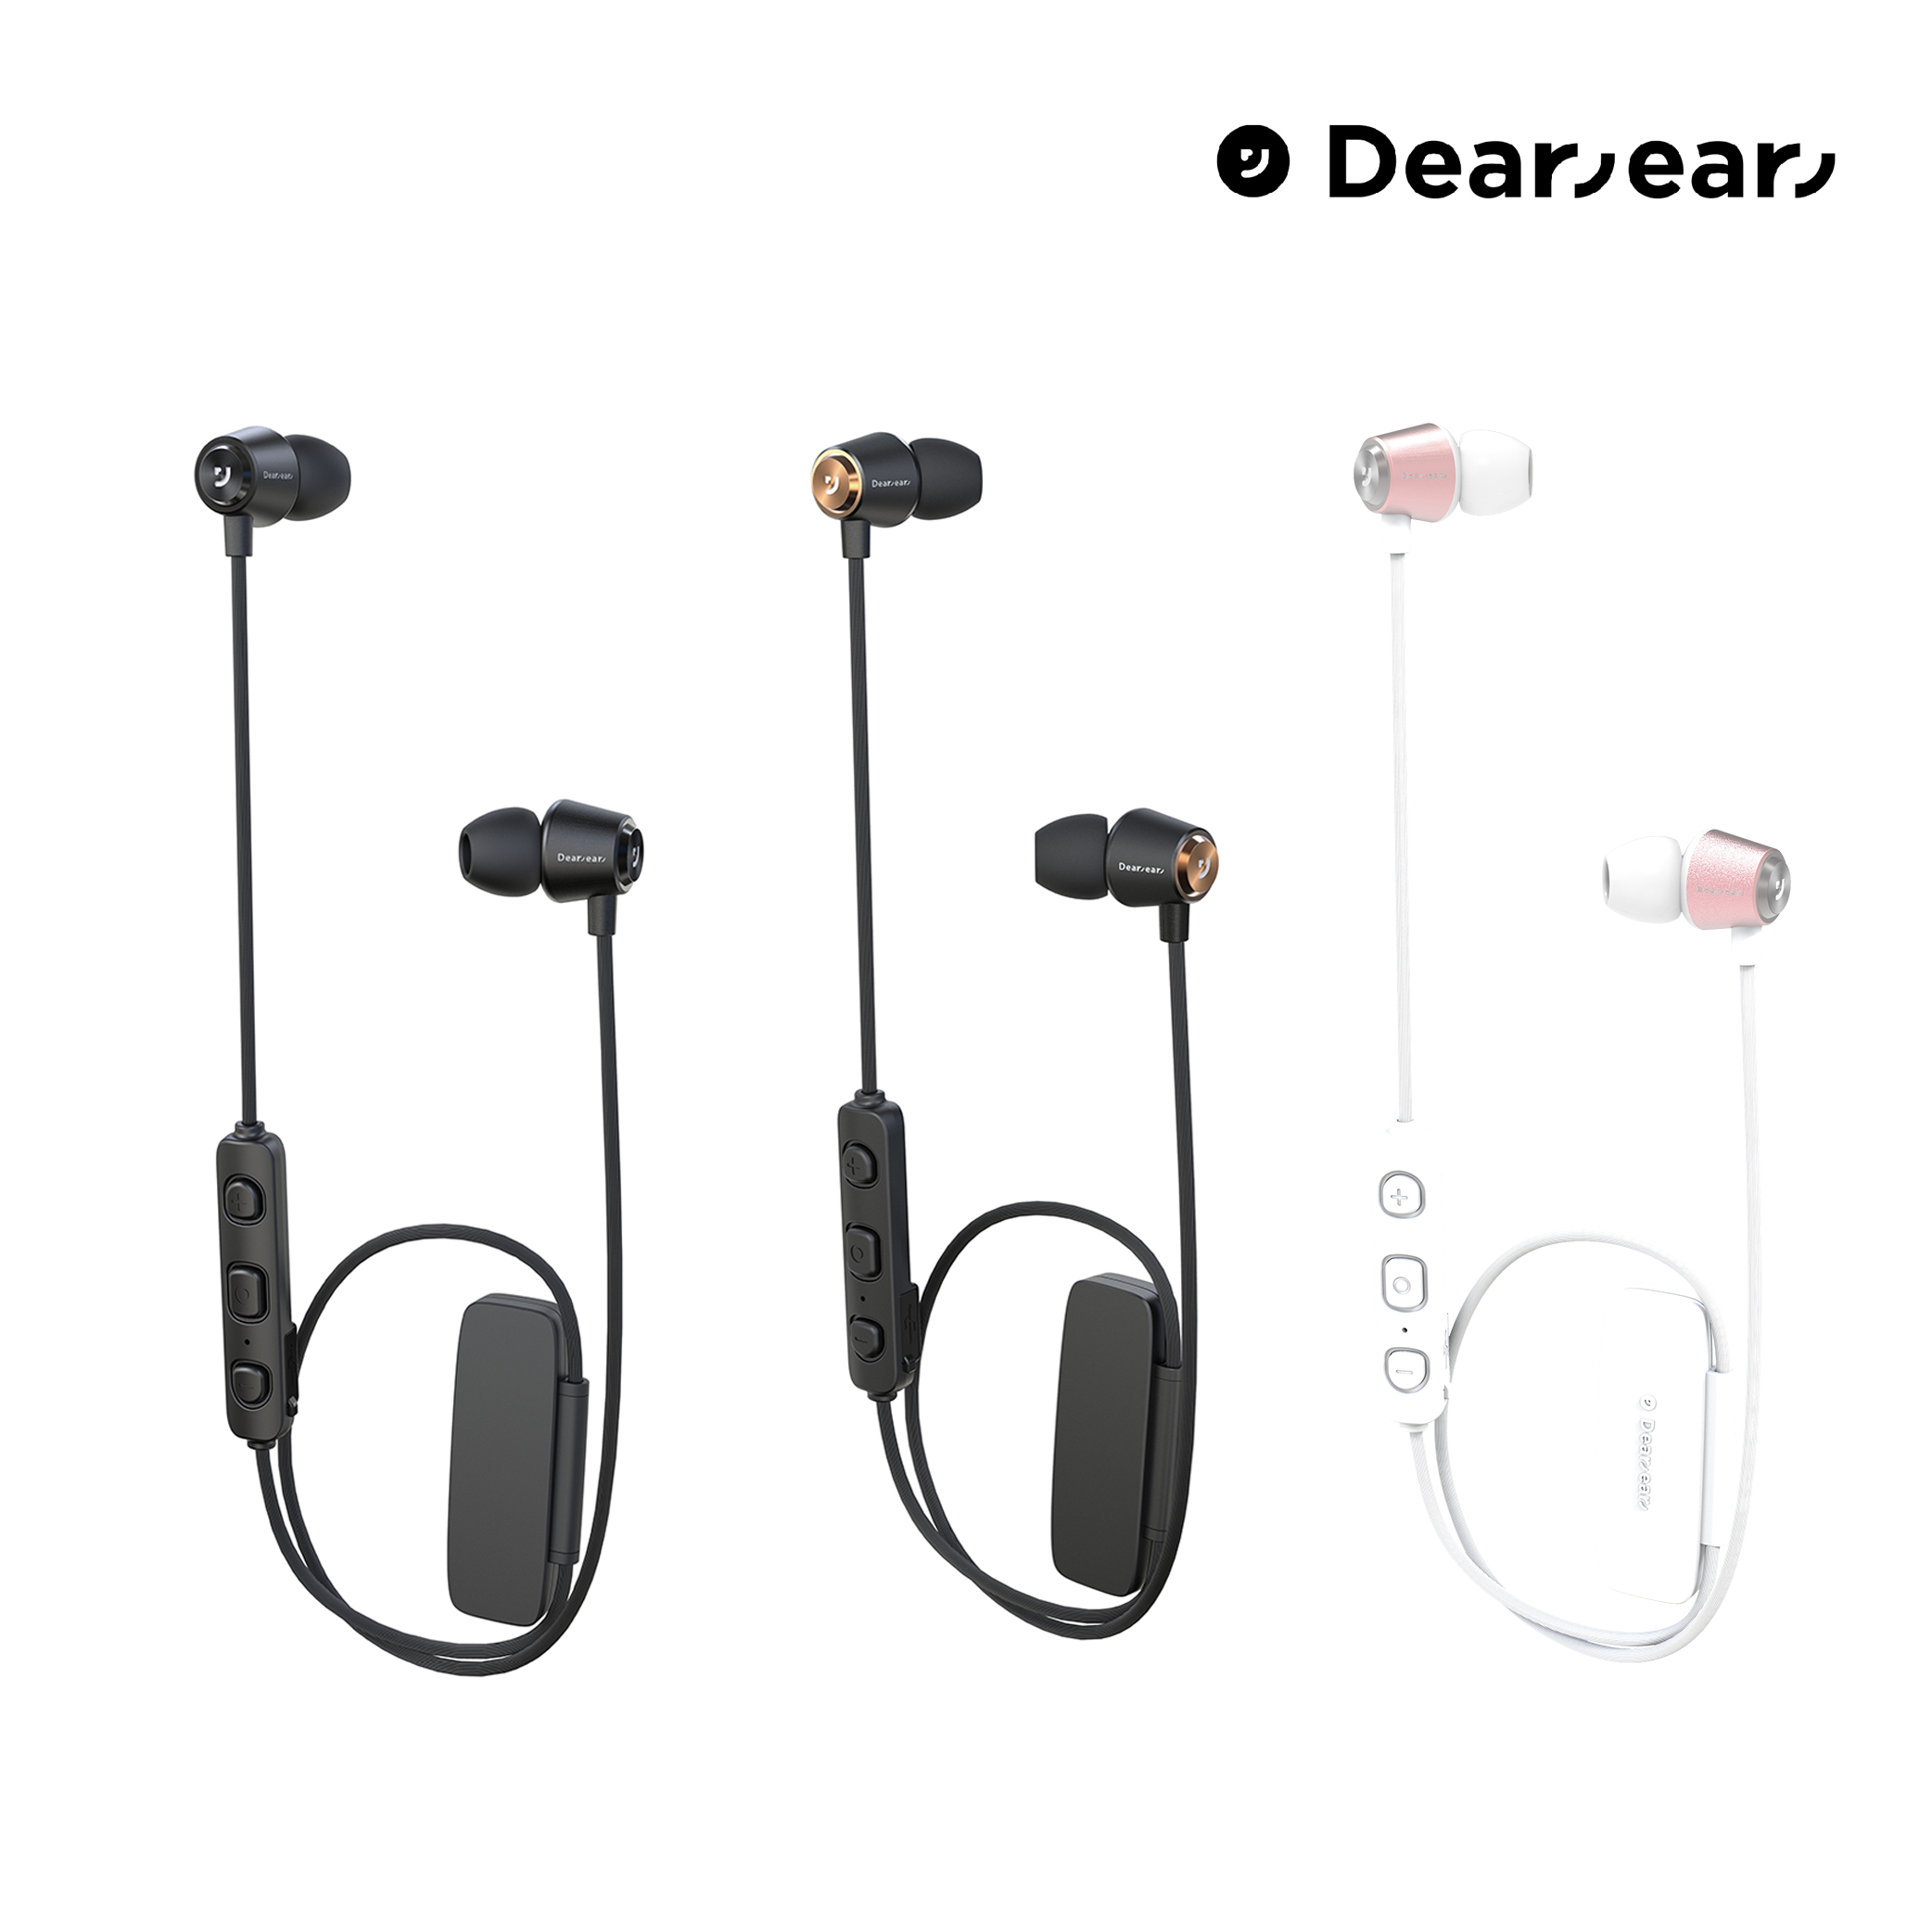 [DearEar] JOYOUS Bluetooth Earphone